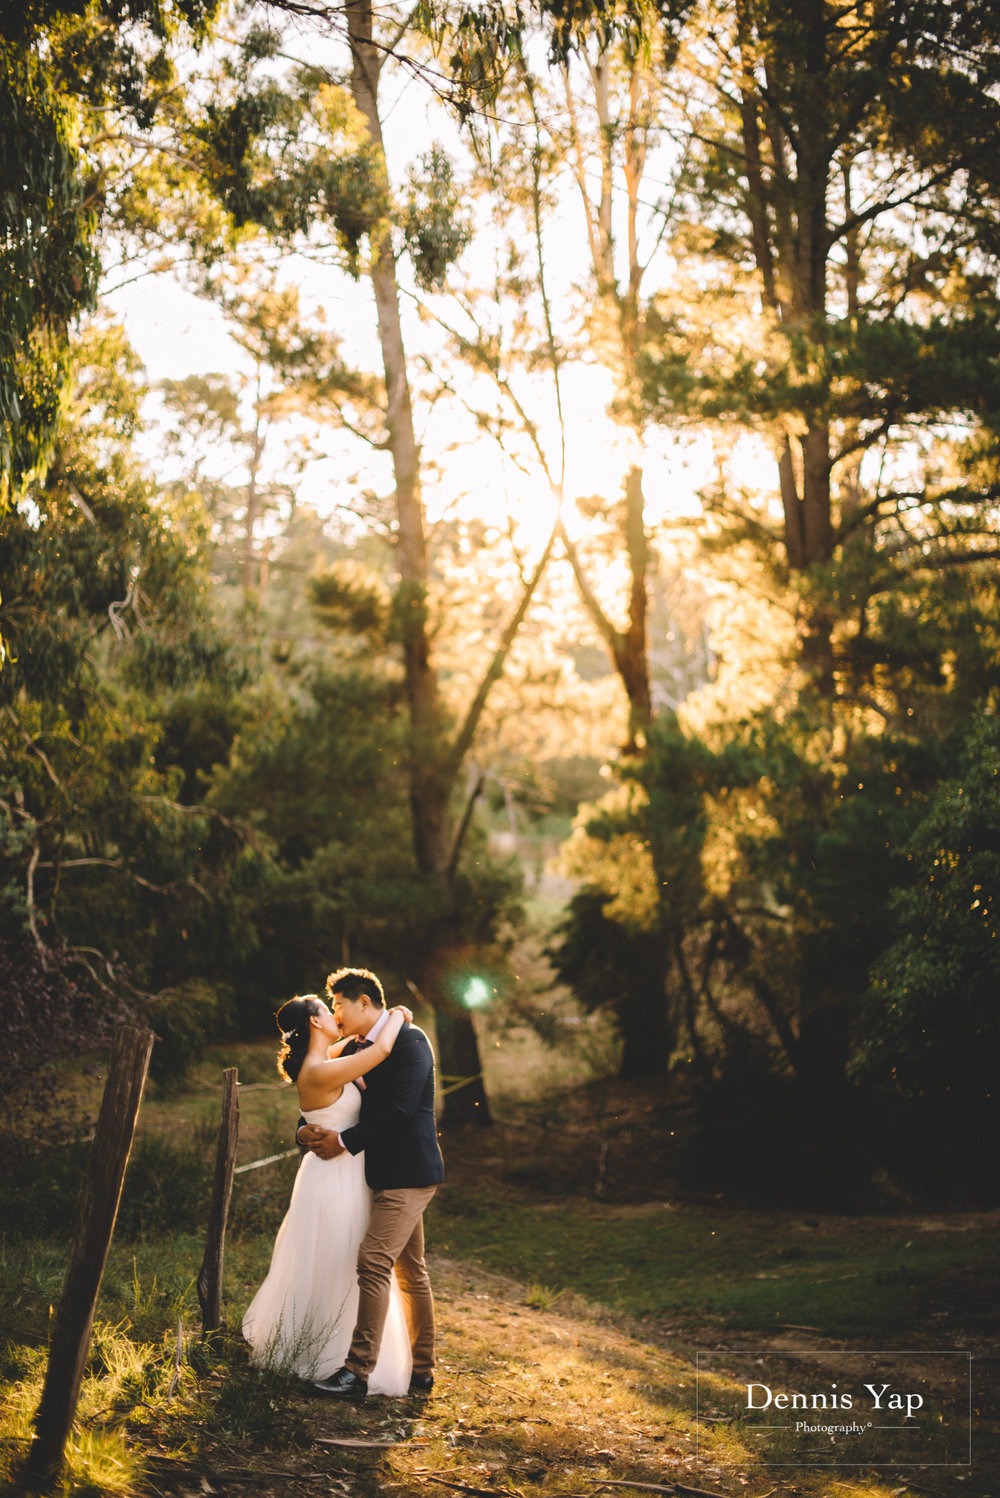 mu zhou karmun pre wedding melbourne north dennis yap photography-20.jpg